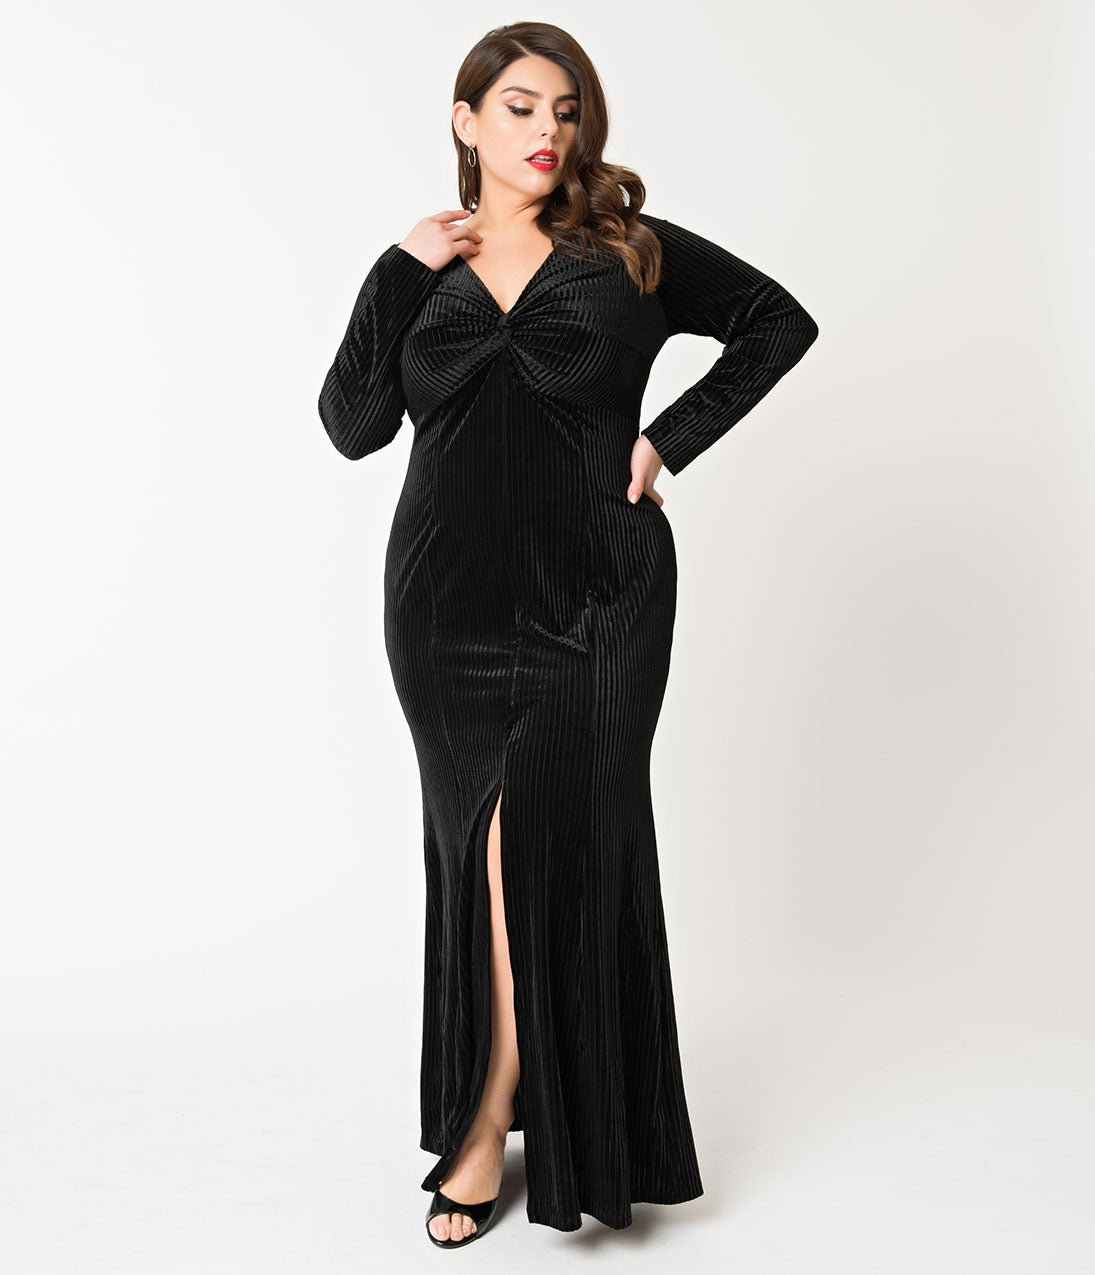 1930s Art Deco Plus Size Dresses Tea Dresses Party Dresses